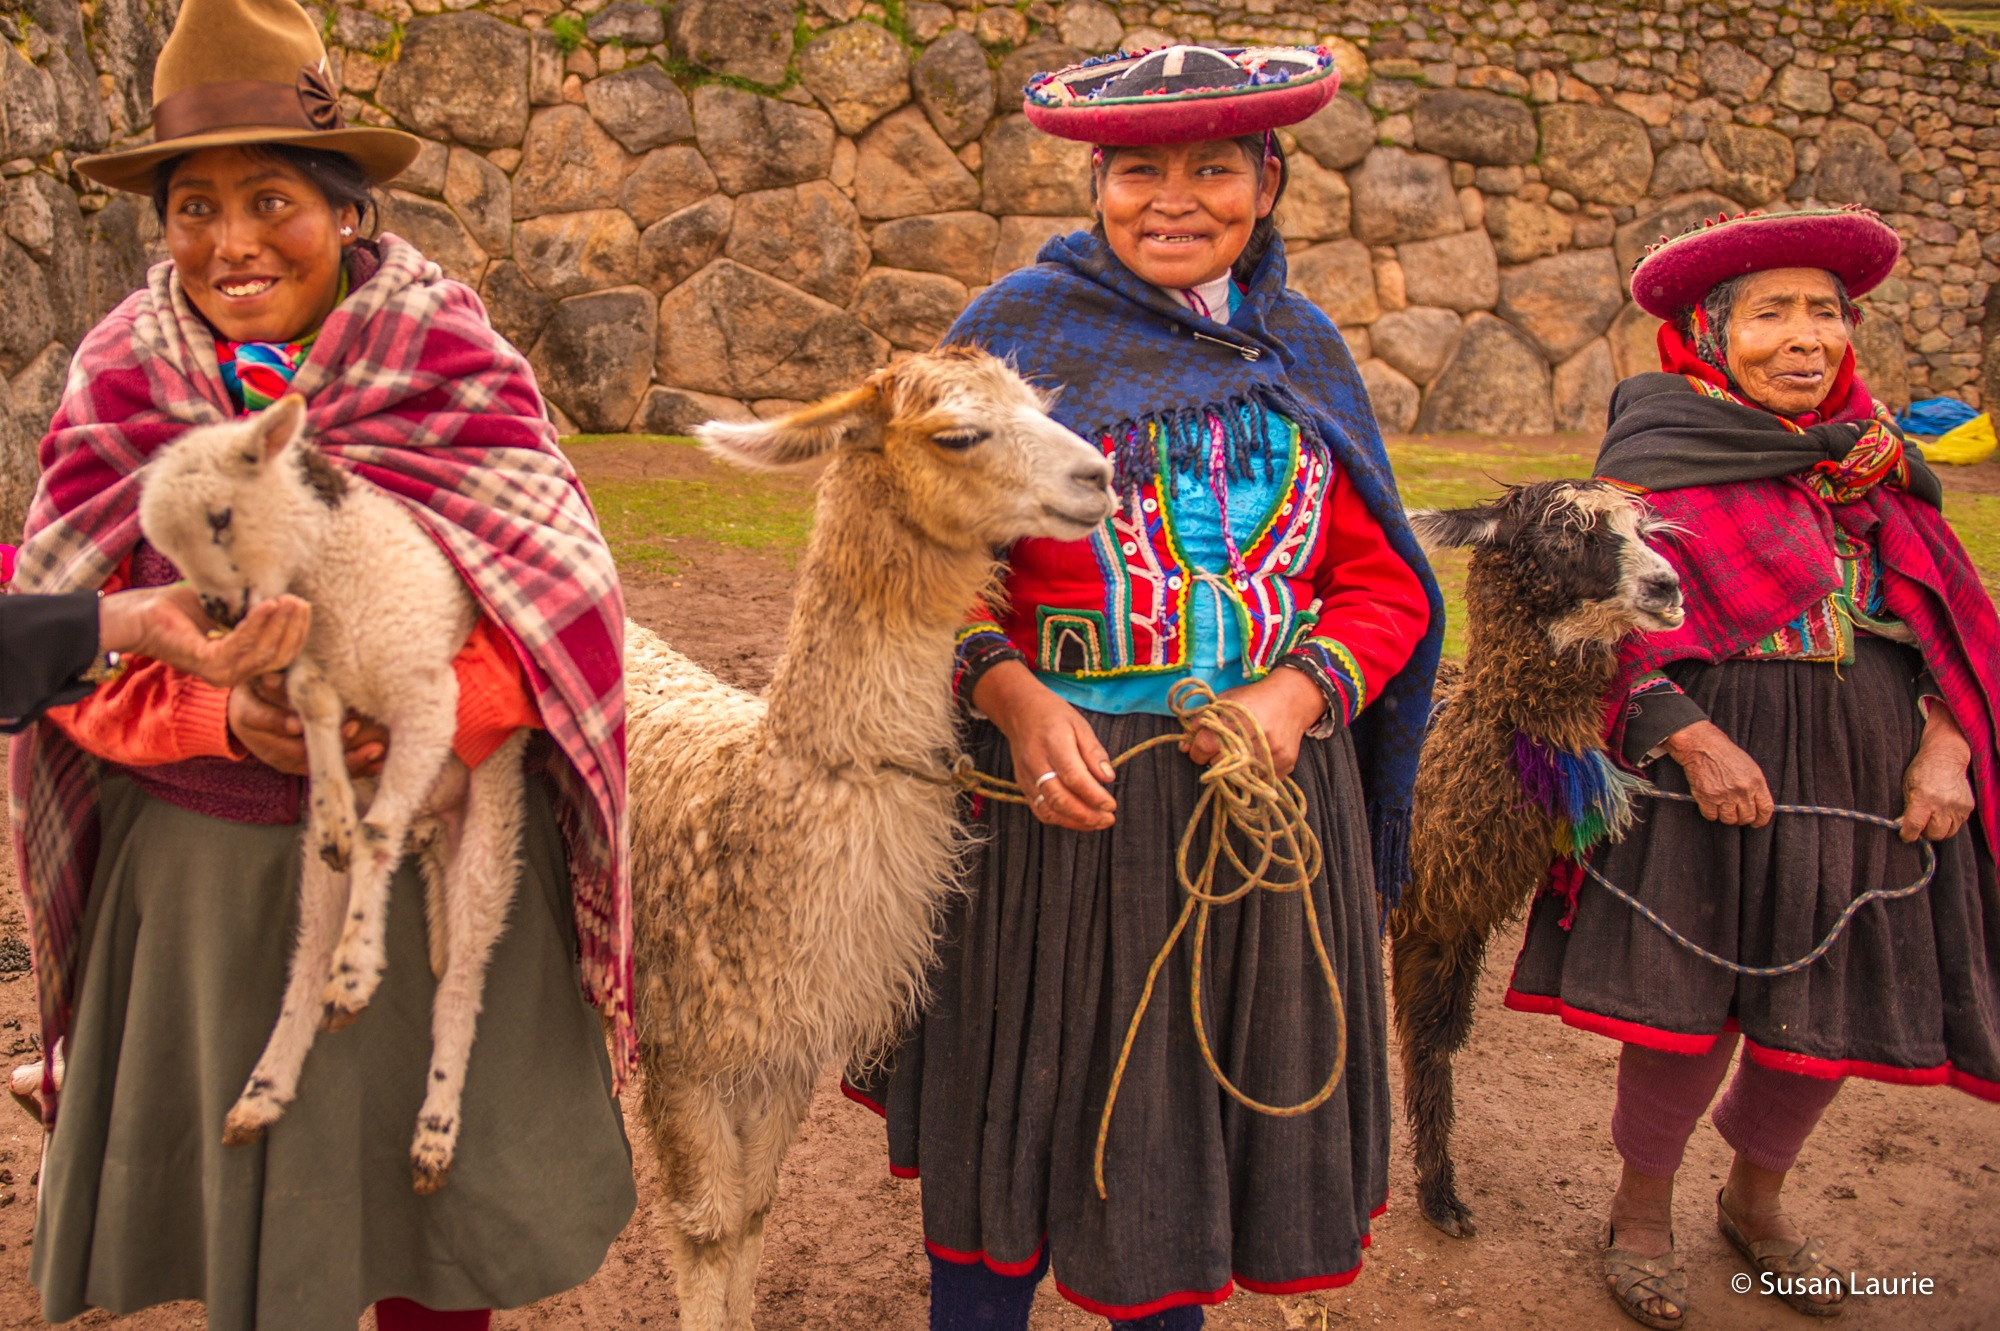 Peru Portraits by Susan Laurie